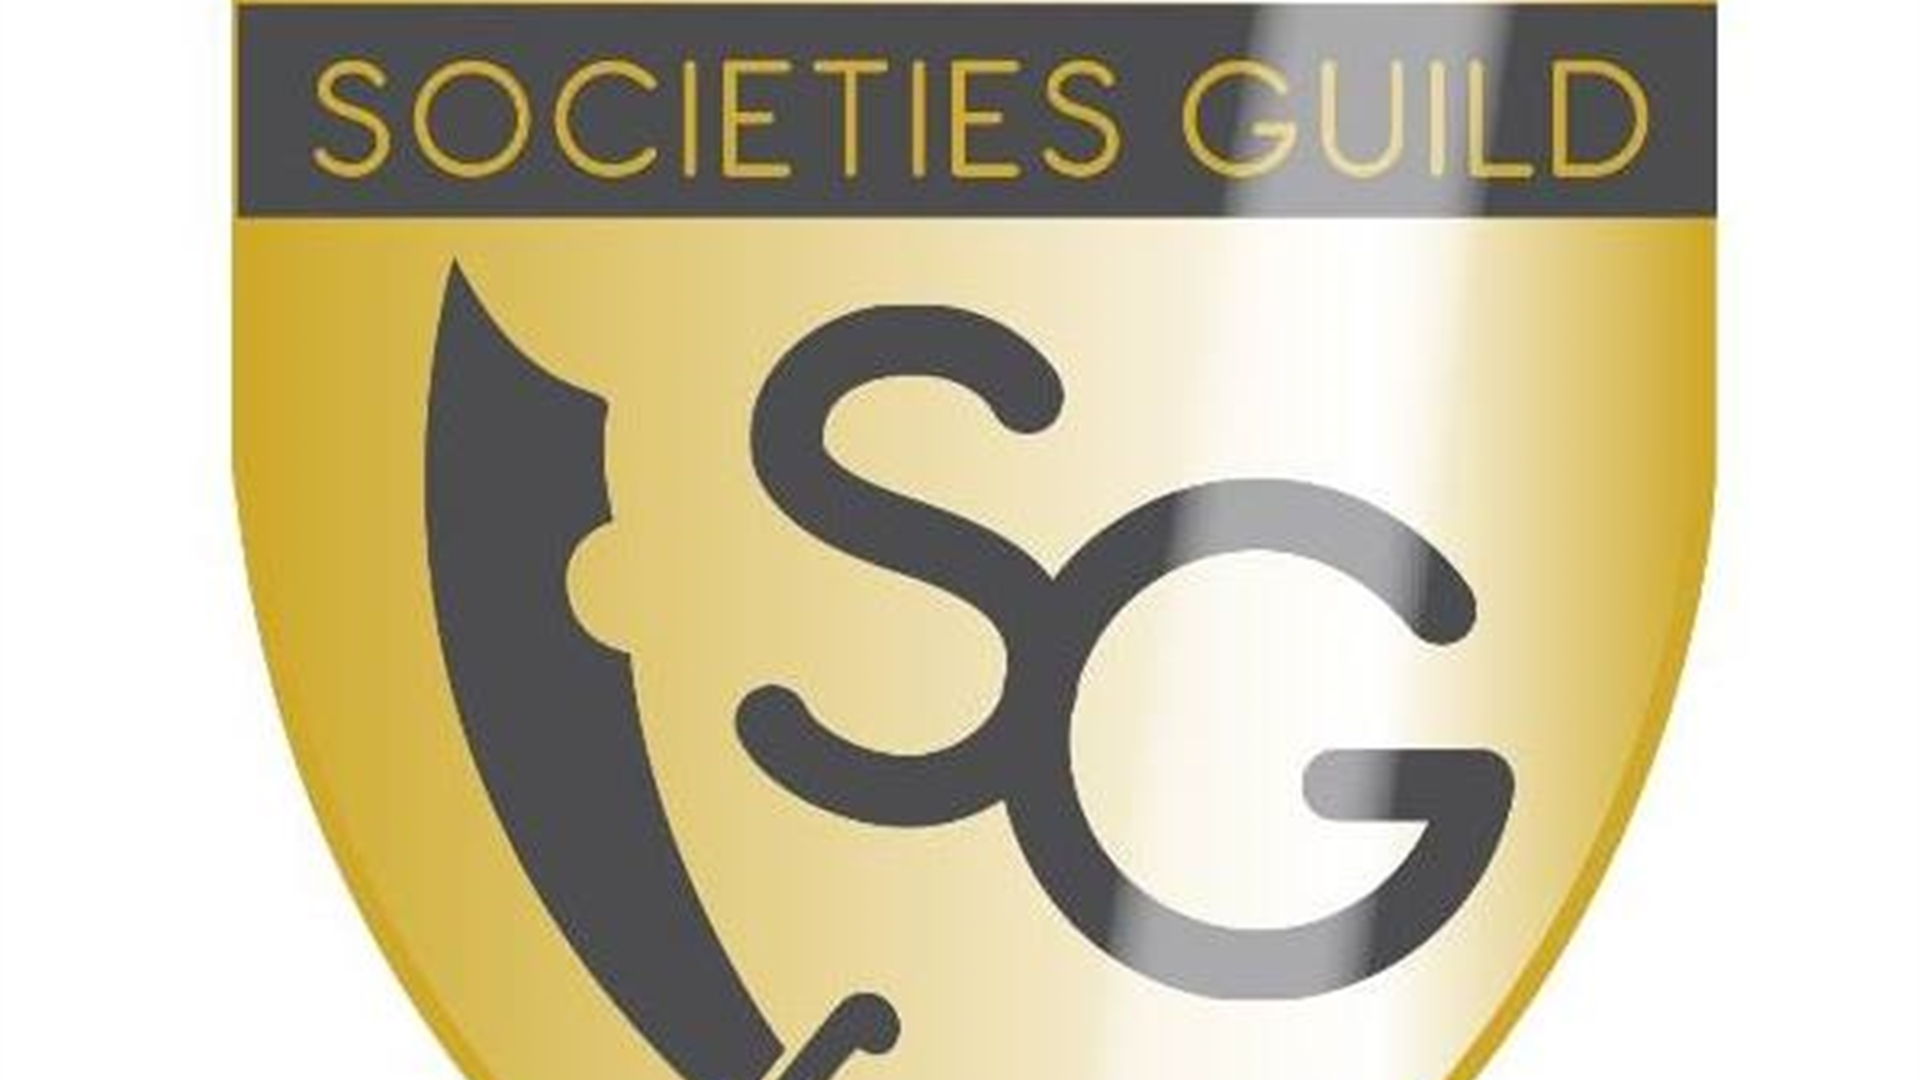 Societies Guild General Meeting